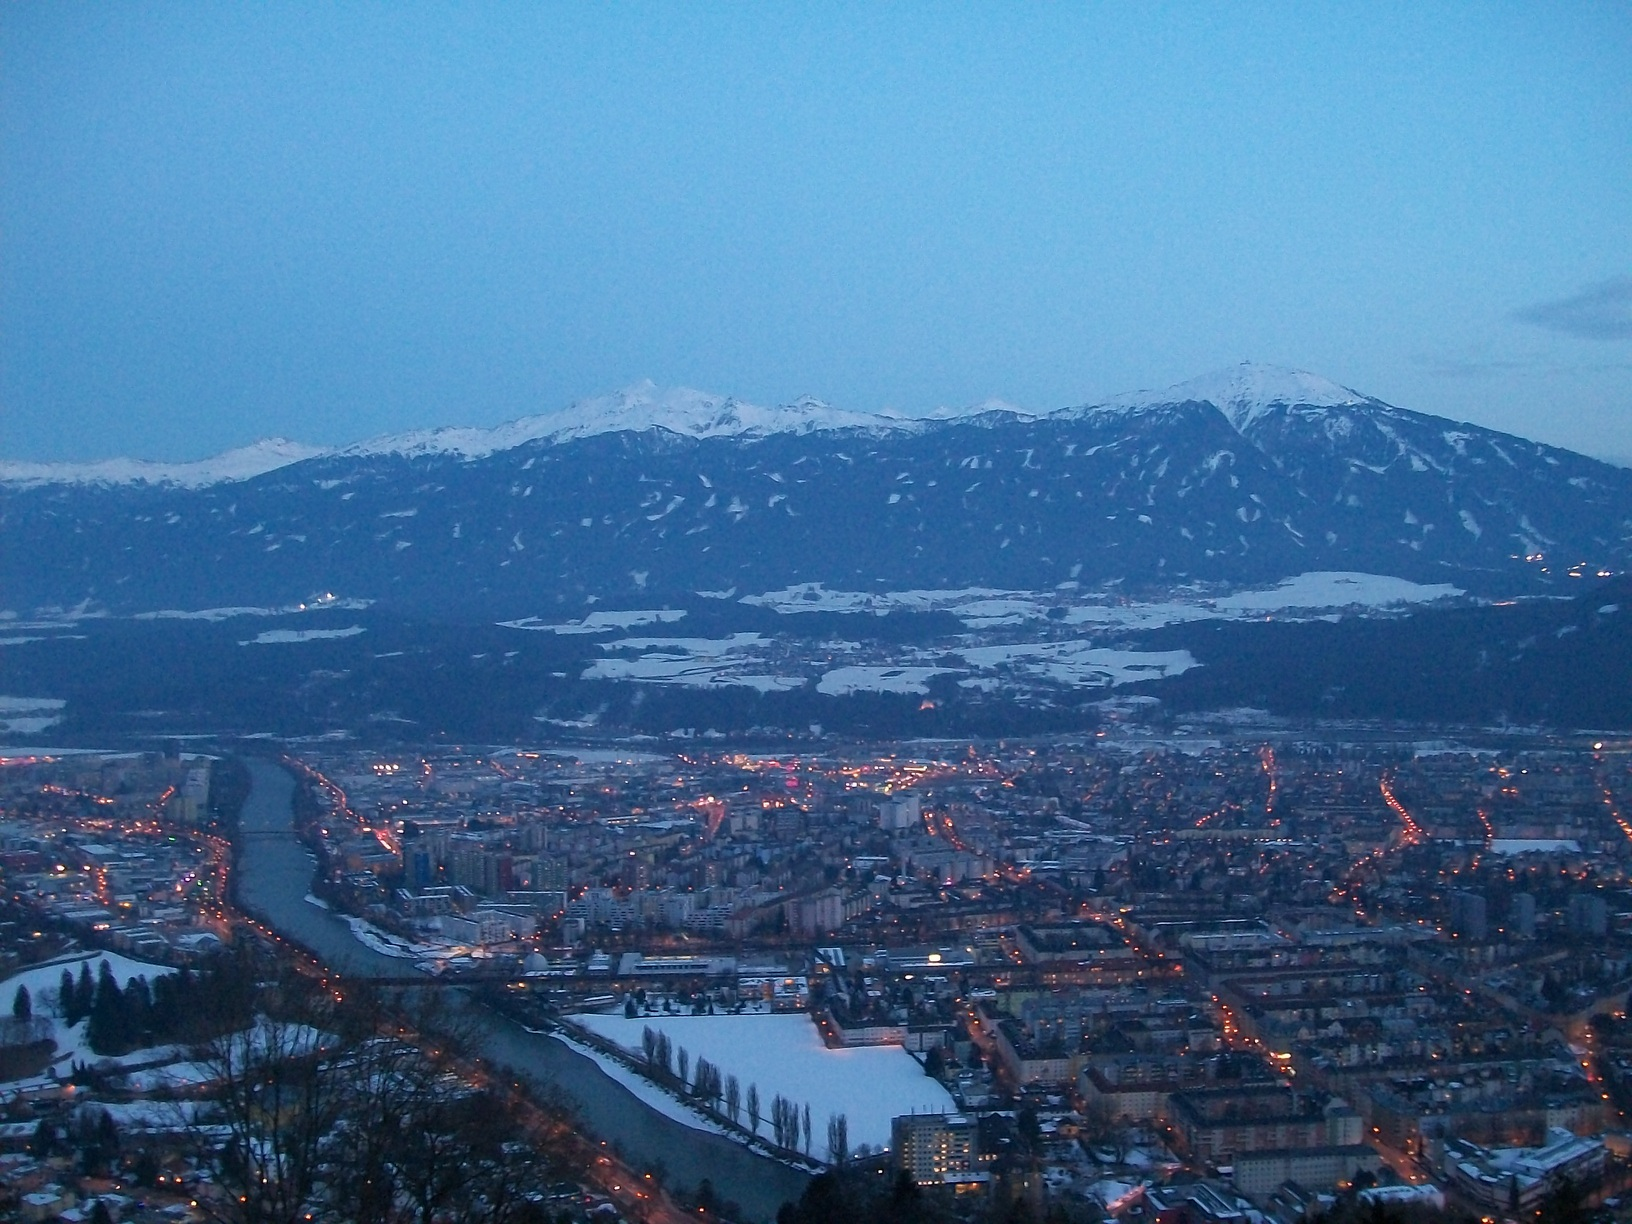 The view of Innsbruck from up high.